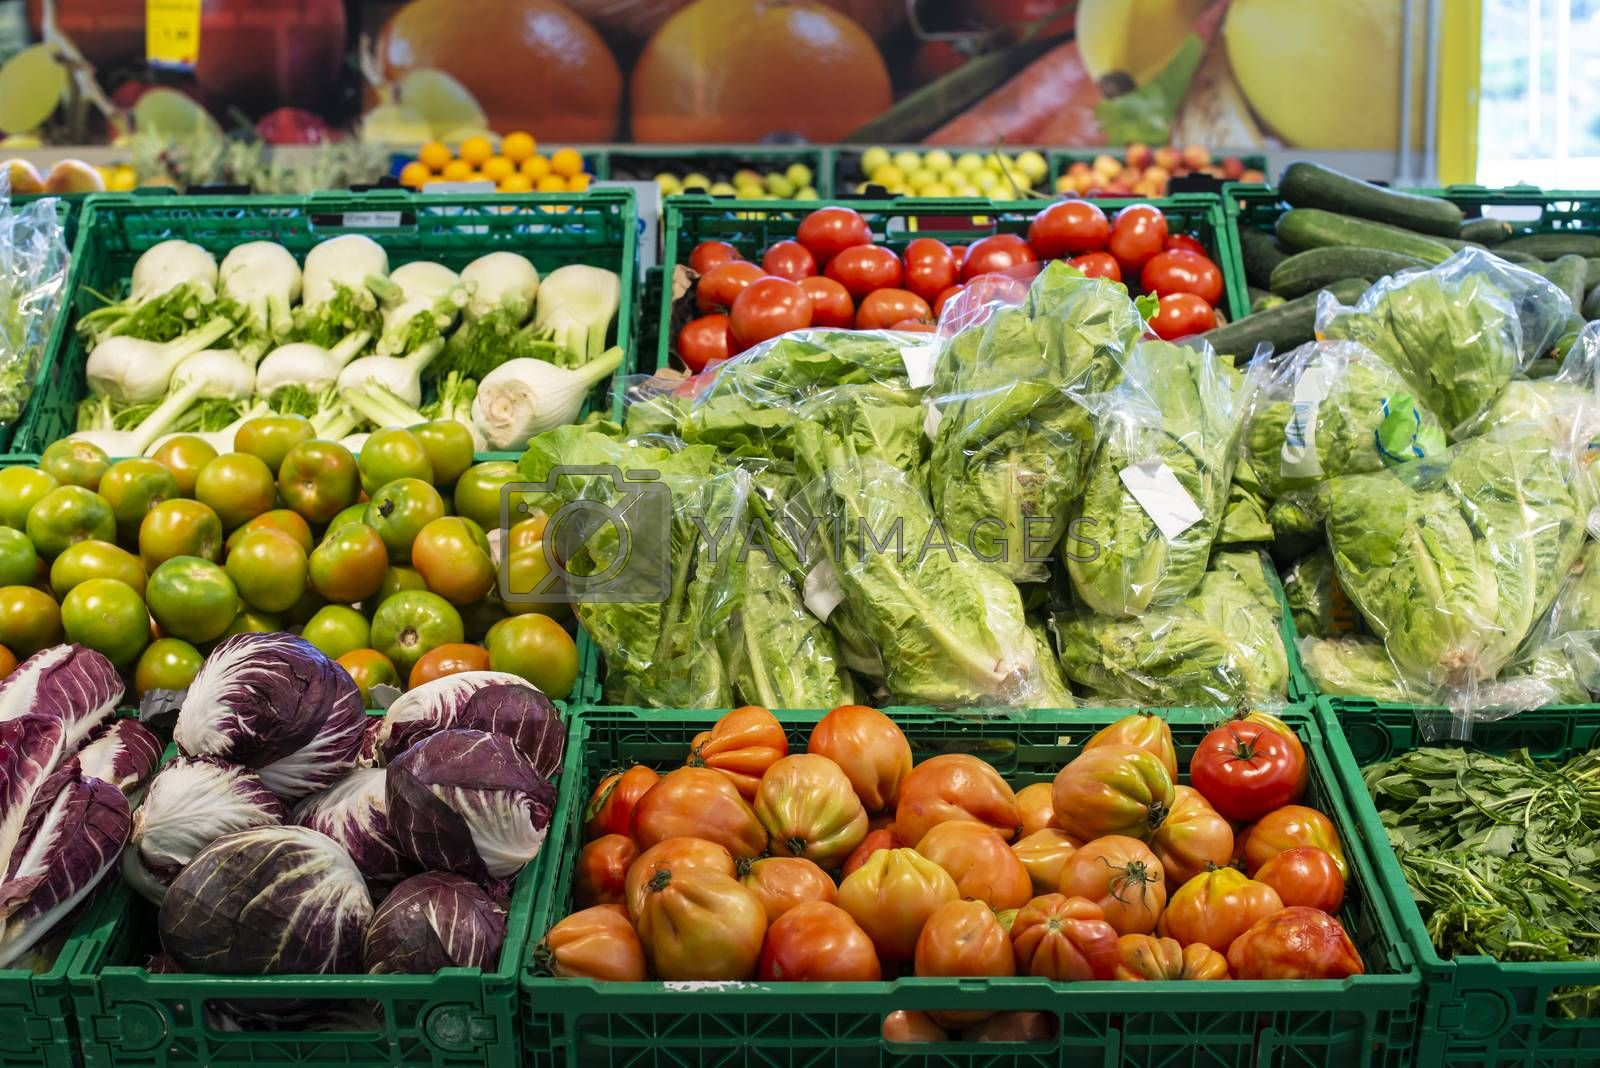 Vegetables in crates in supermarket. Arranged tomatoes, lettuce, fennel and radicchio.